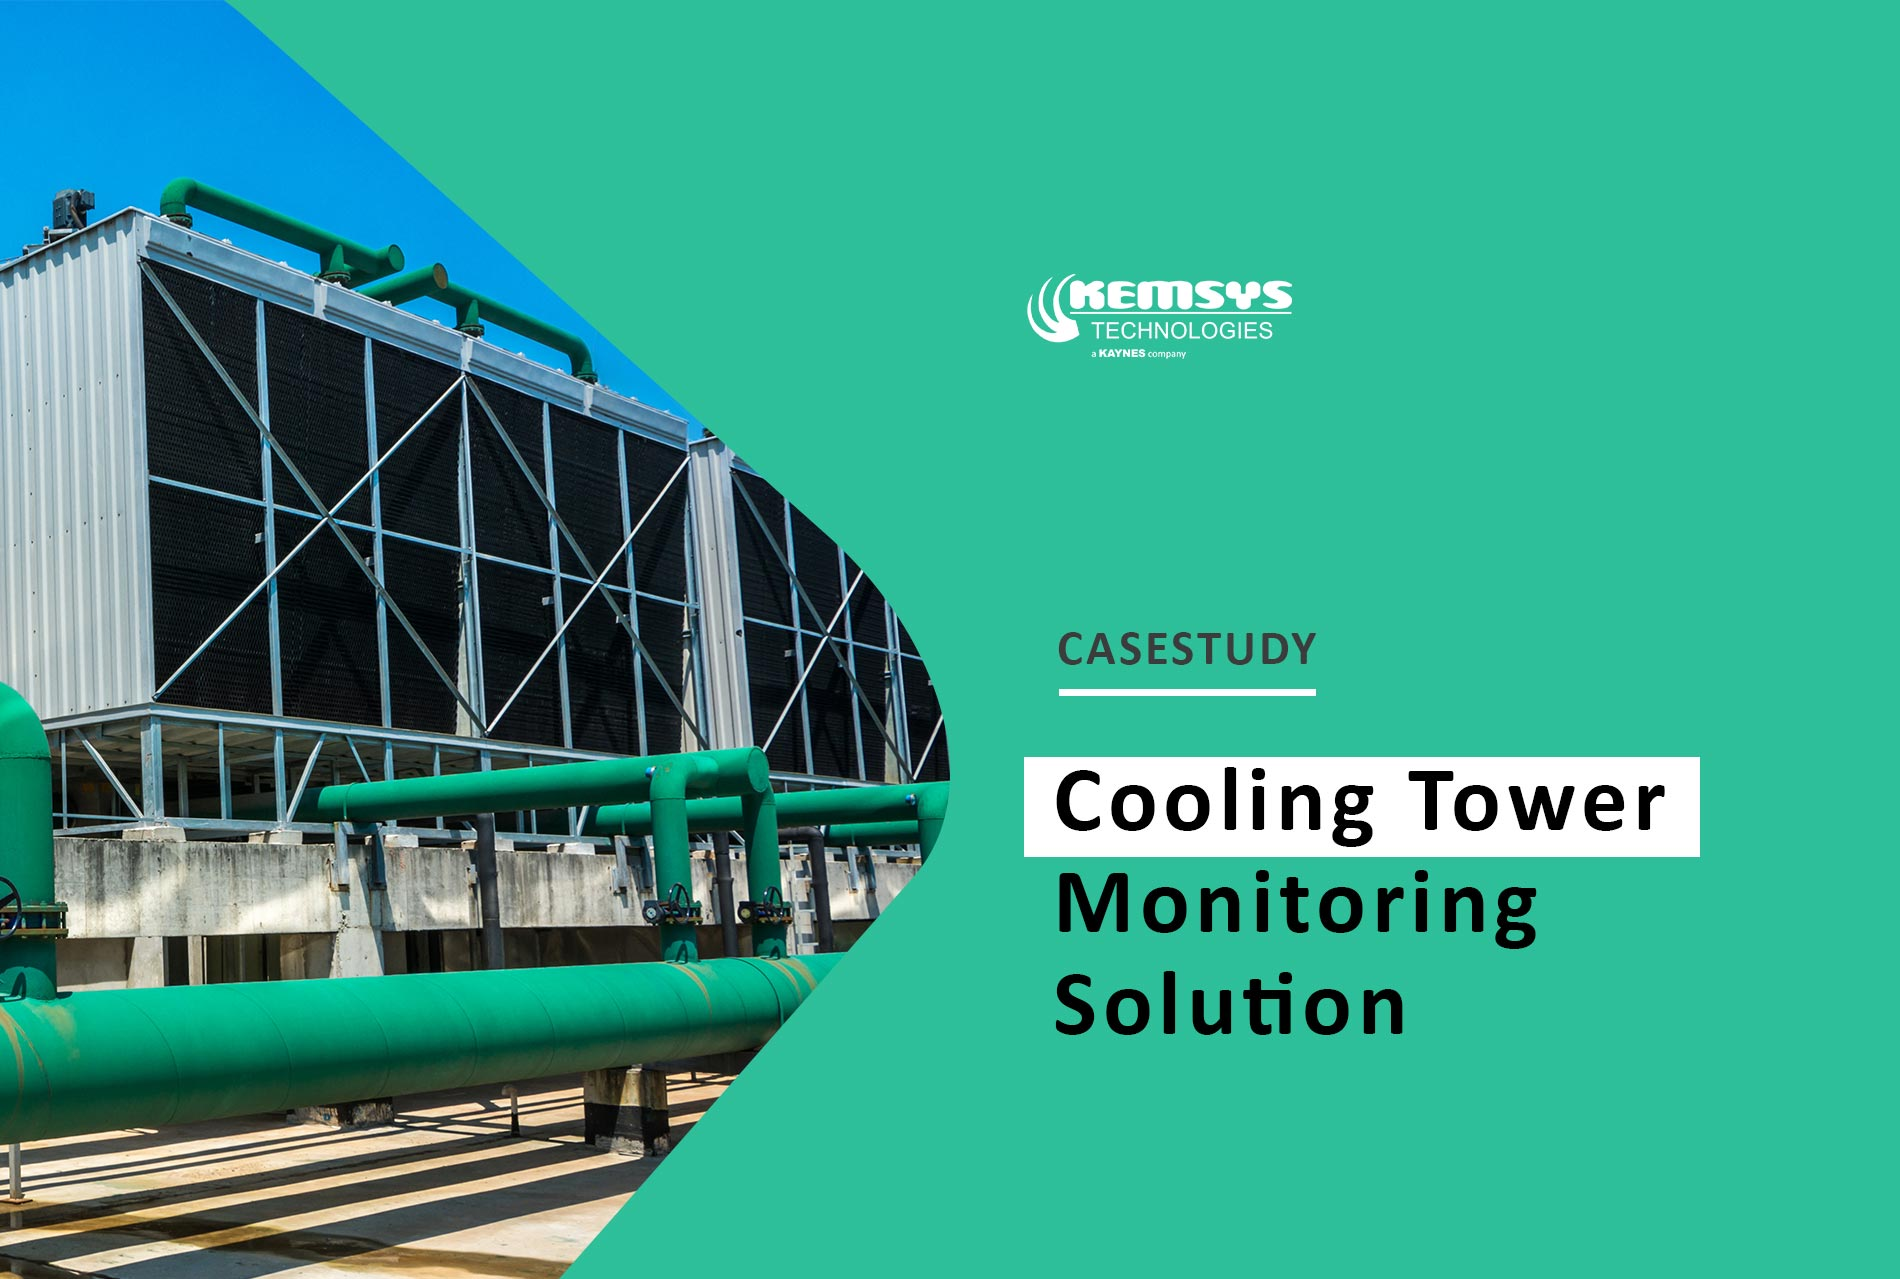 Case-study-Cooling-tower-monitoring-solution-Kemsys